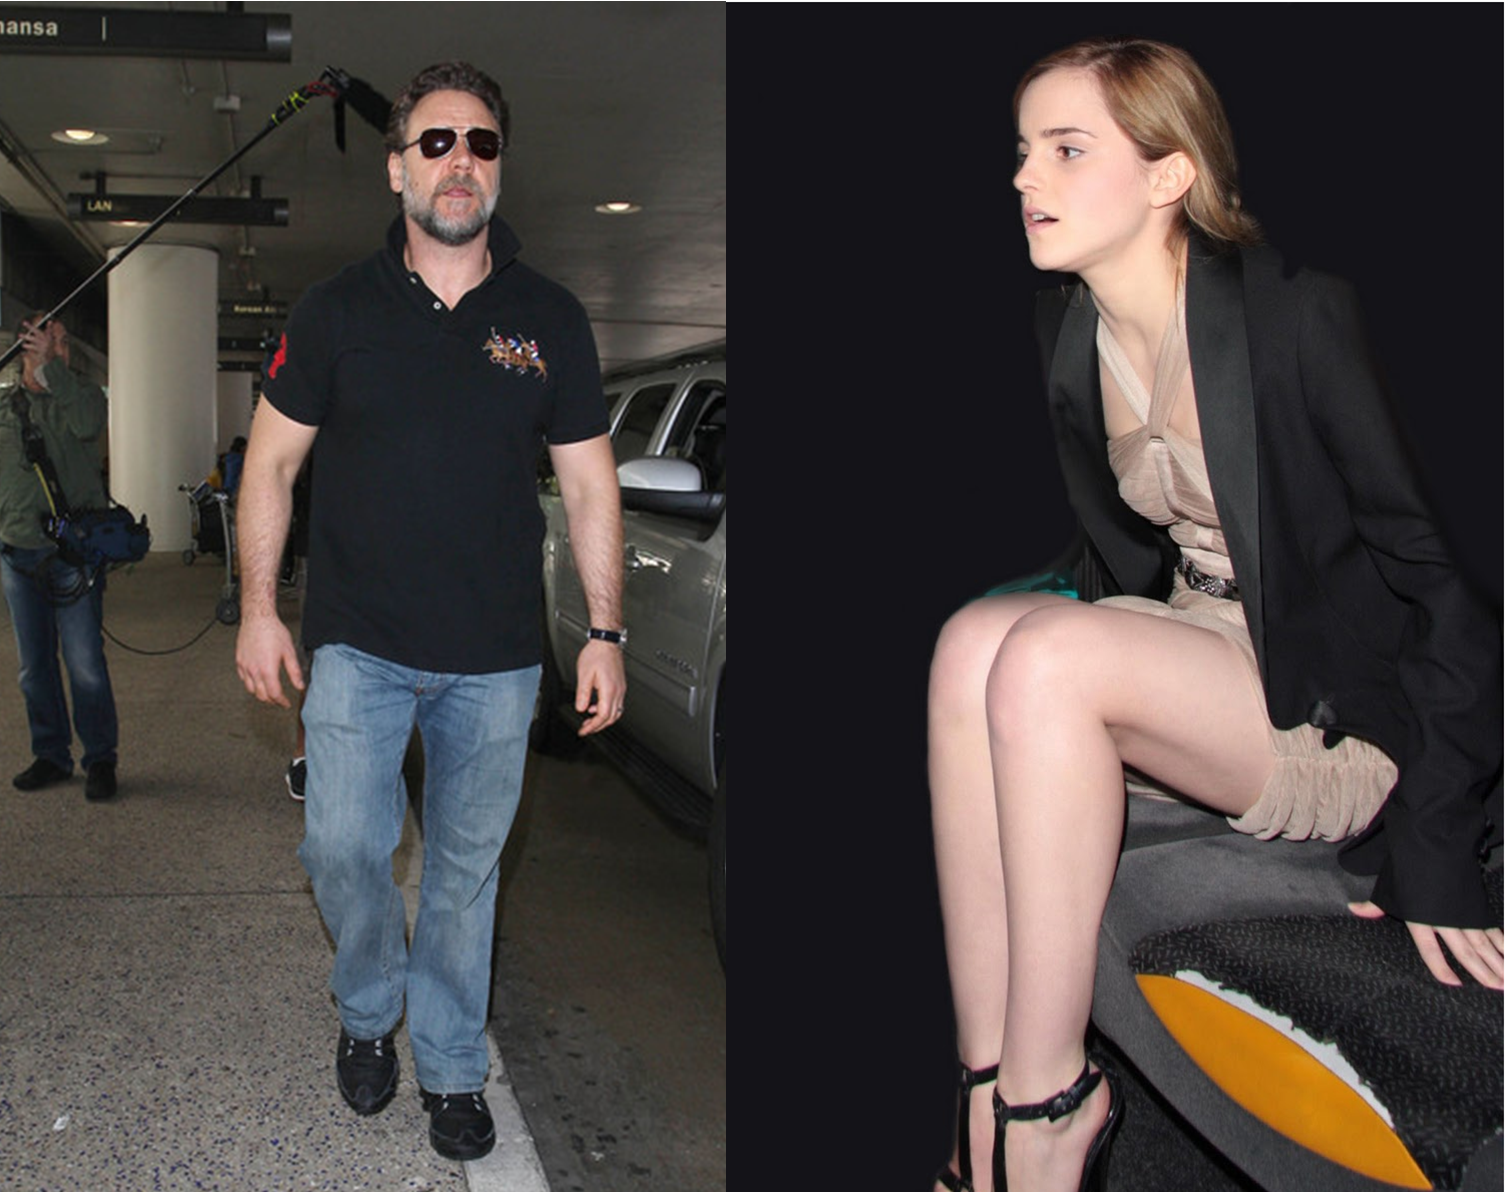 http://2.bp.blogspot.com/-iLPTNJZy8pM/T_mXKd3MRkI/AAAAAAAA1Pk/ucEezRpxza8/s1600/Russell+Crowe\'s+Kids+Excited+About+Co-Star+Emma+Watson.png